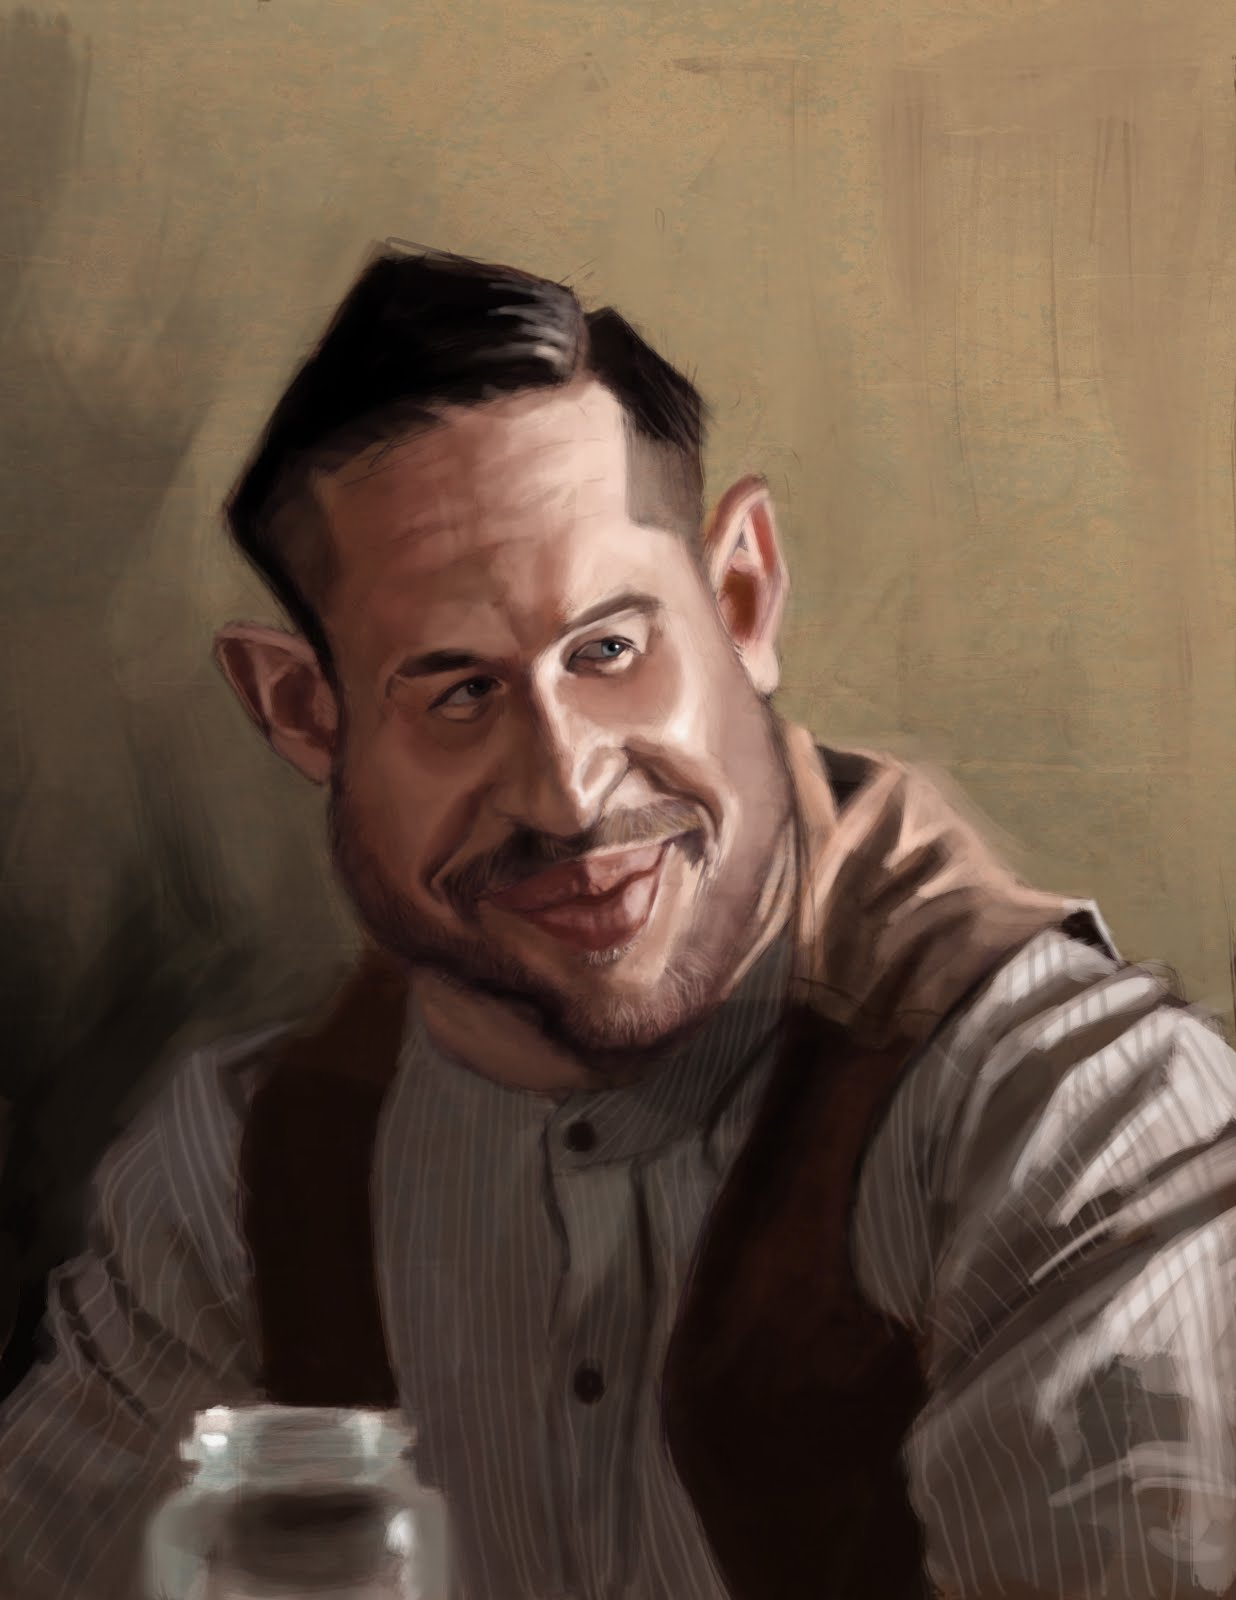 tom hardy lawless hairstyle name hair